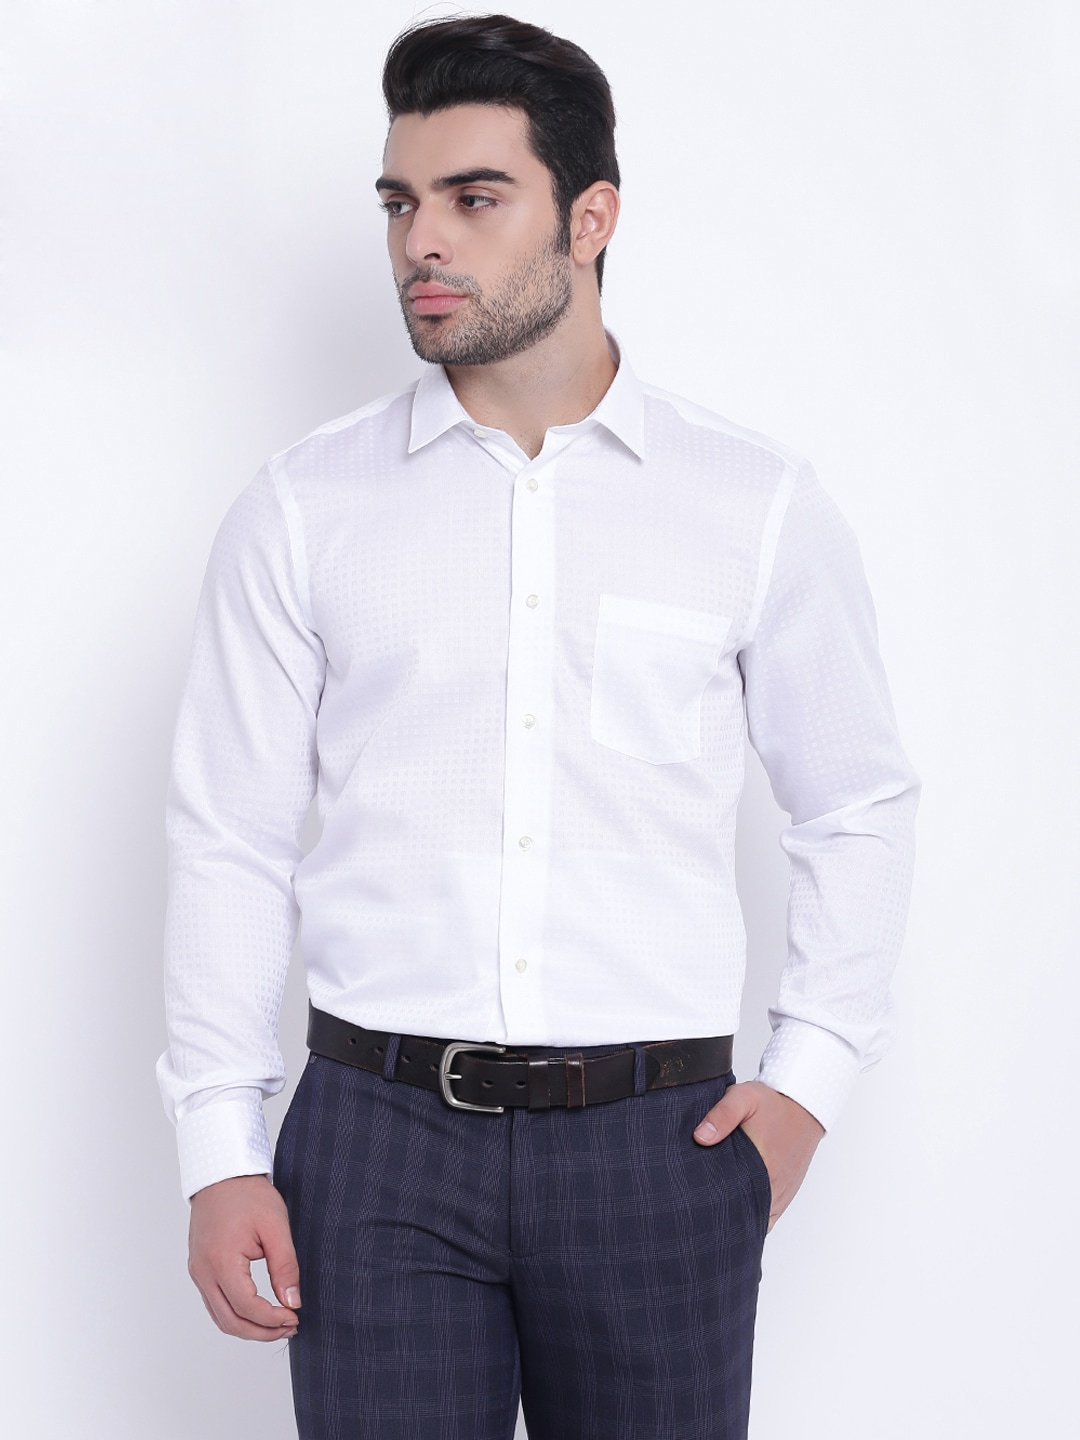 aec64a86eeb White Party Wear Shirts - Buy White Party Wear Shirts online in India